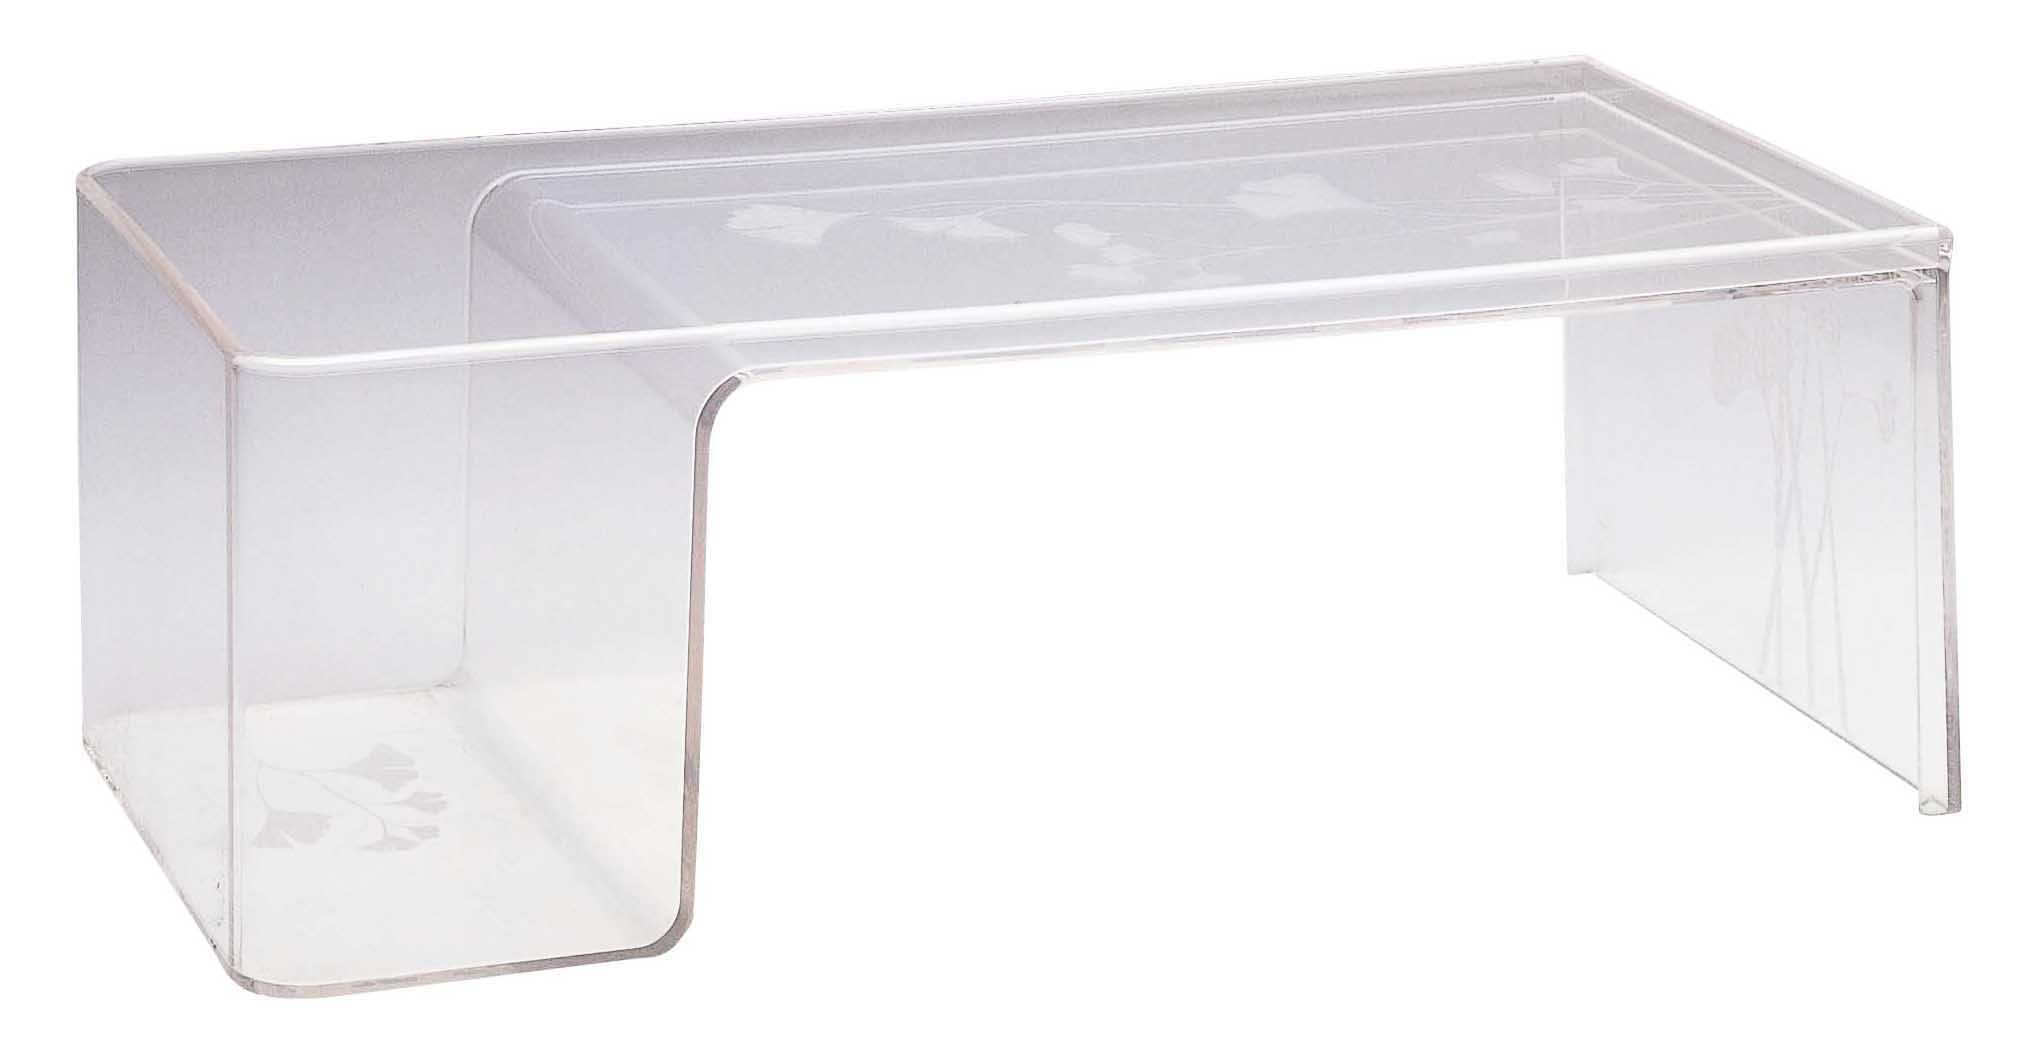 8254c7a9cea0da ... Mobilier - Tables basses - Table basse Usame - Kartell - Cristal - PMMA